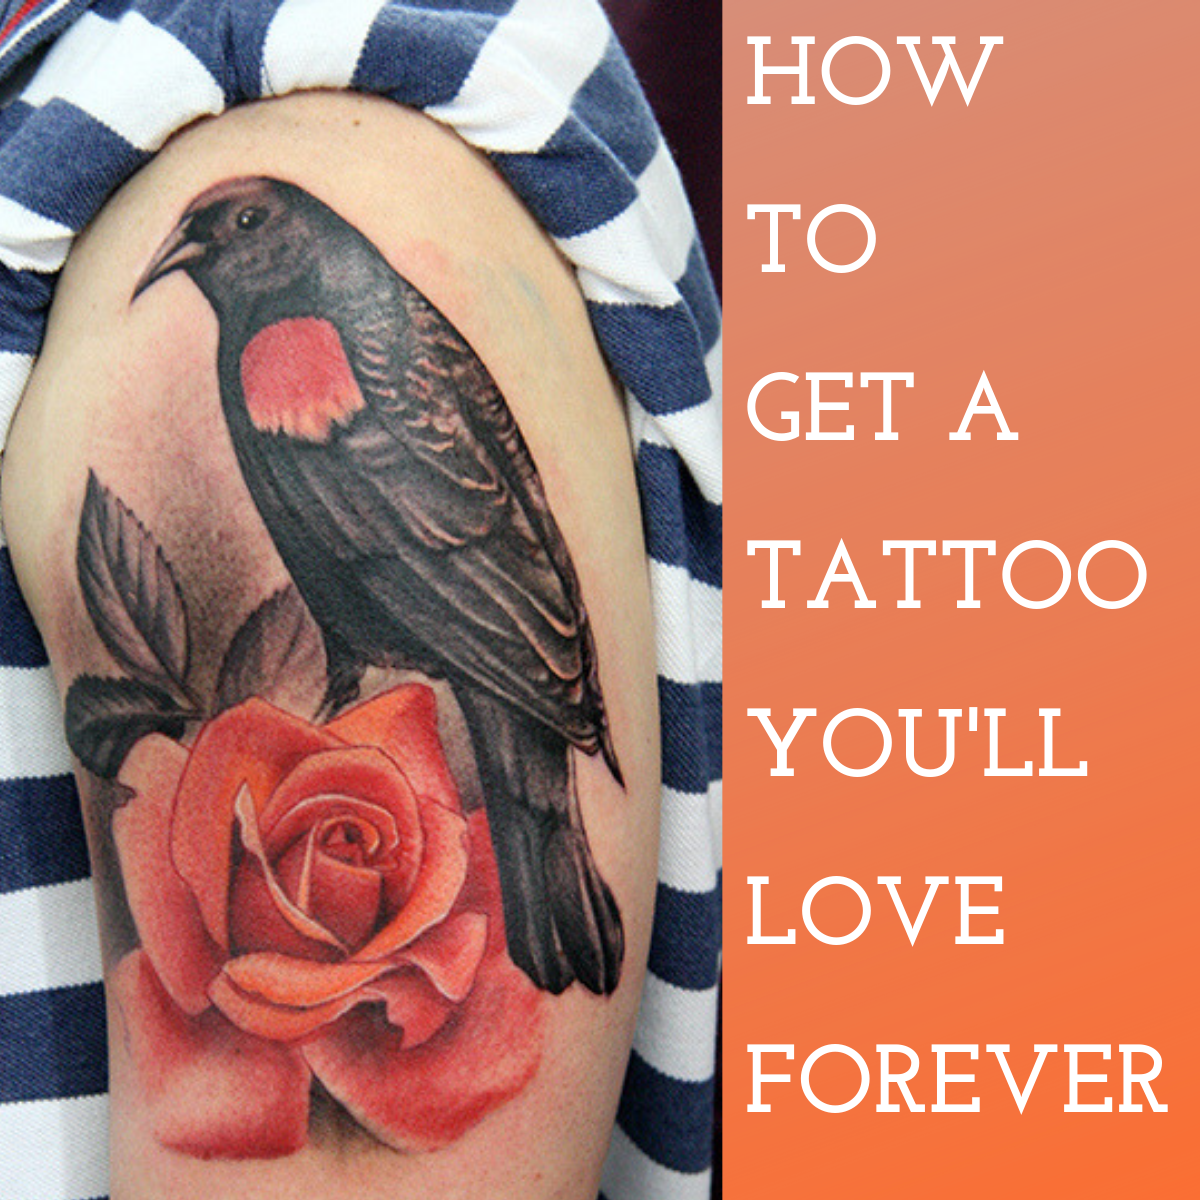 A Tattoo Artist S Tips For Getting A Tattoo You Ll Love Forever